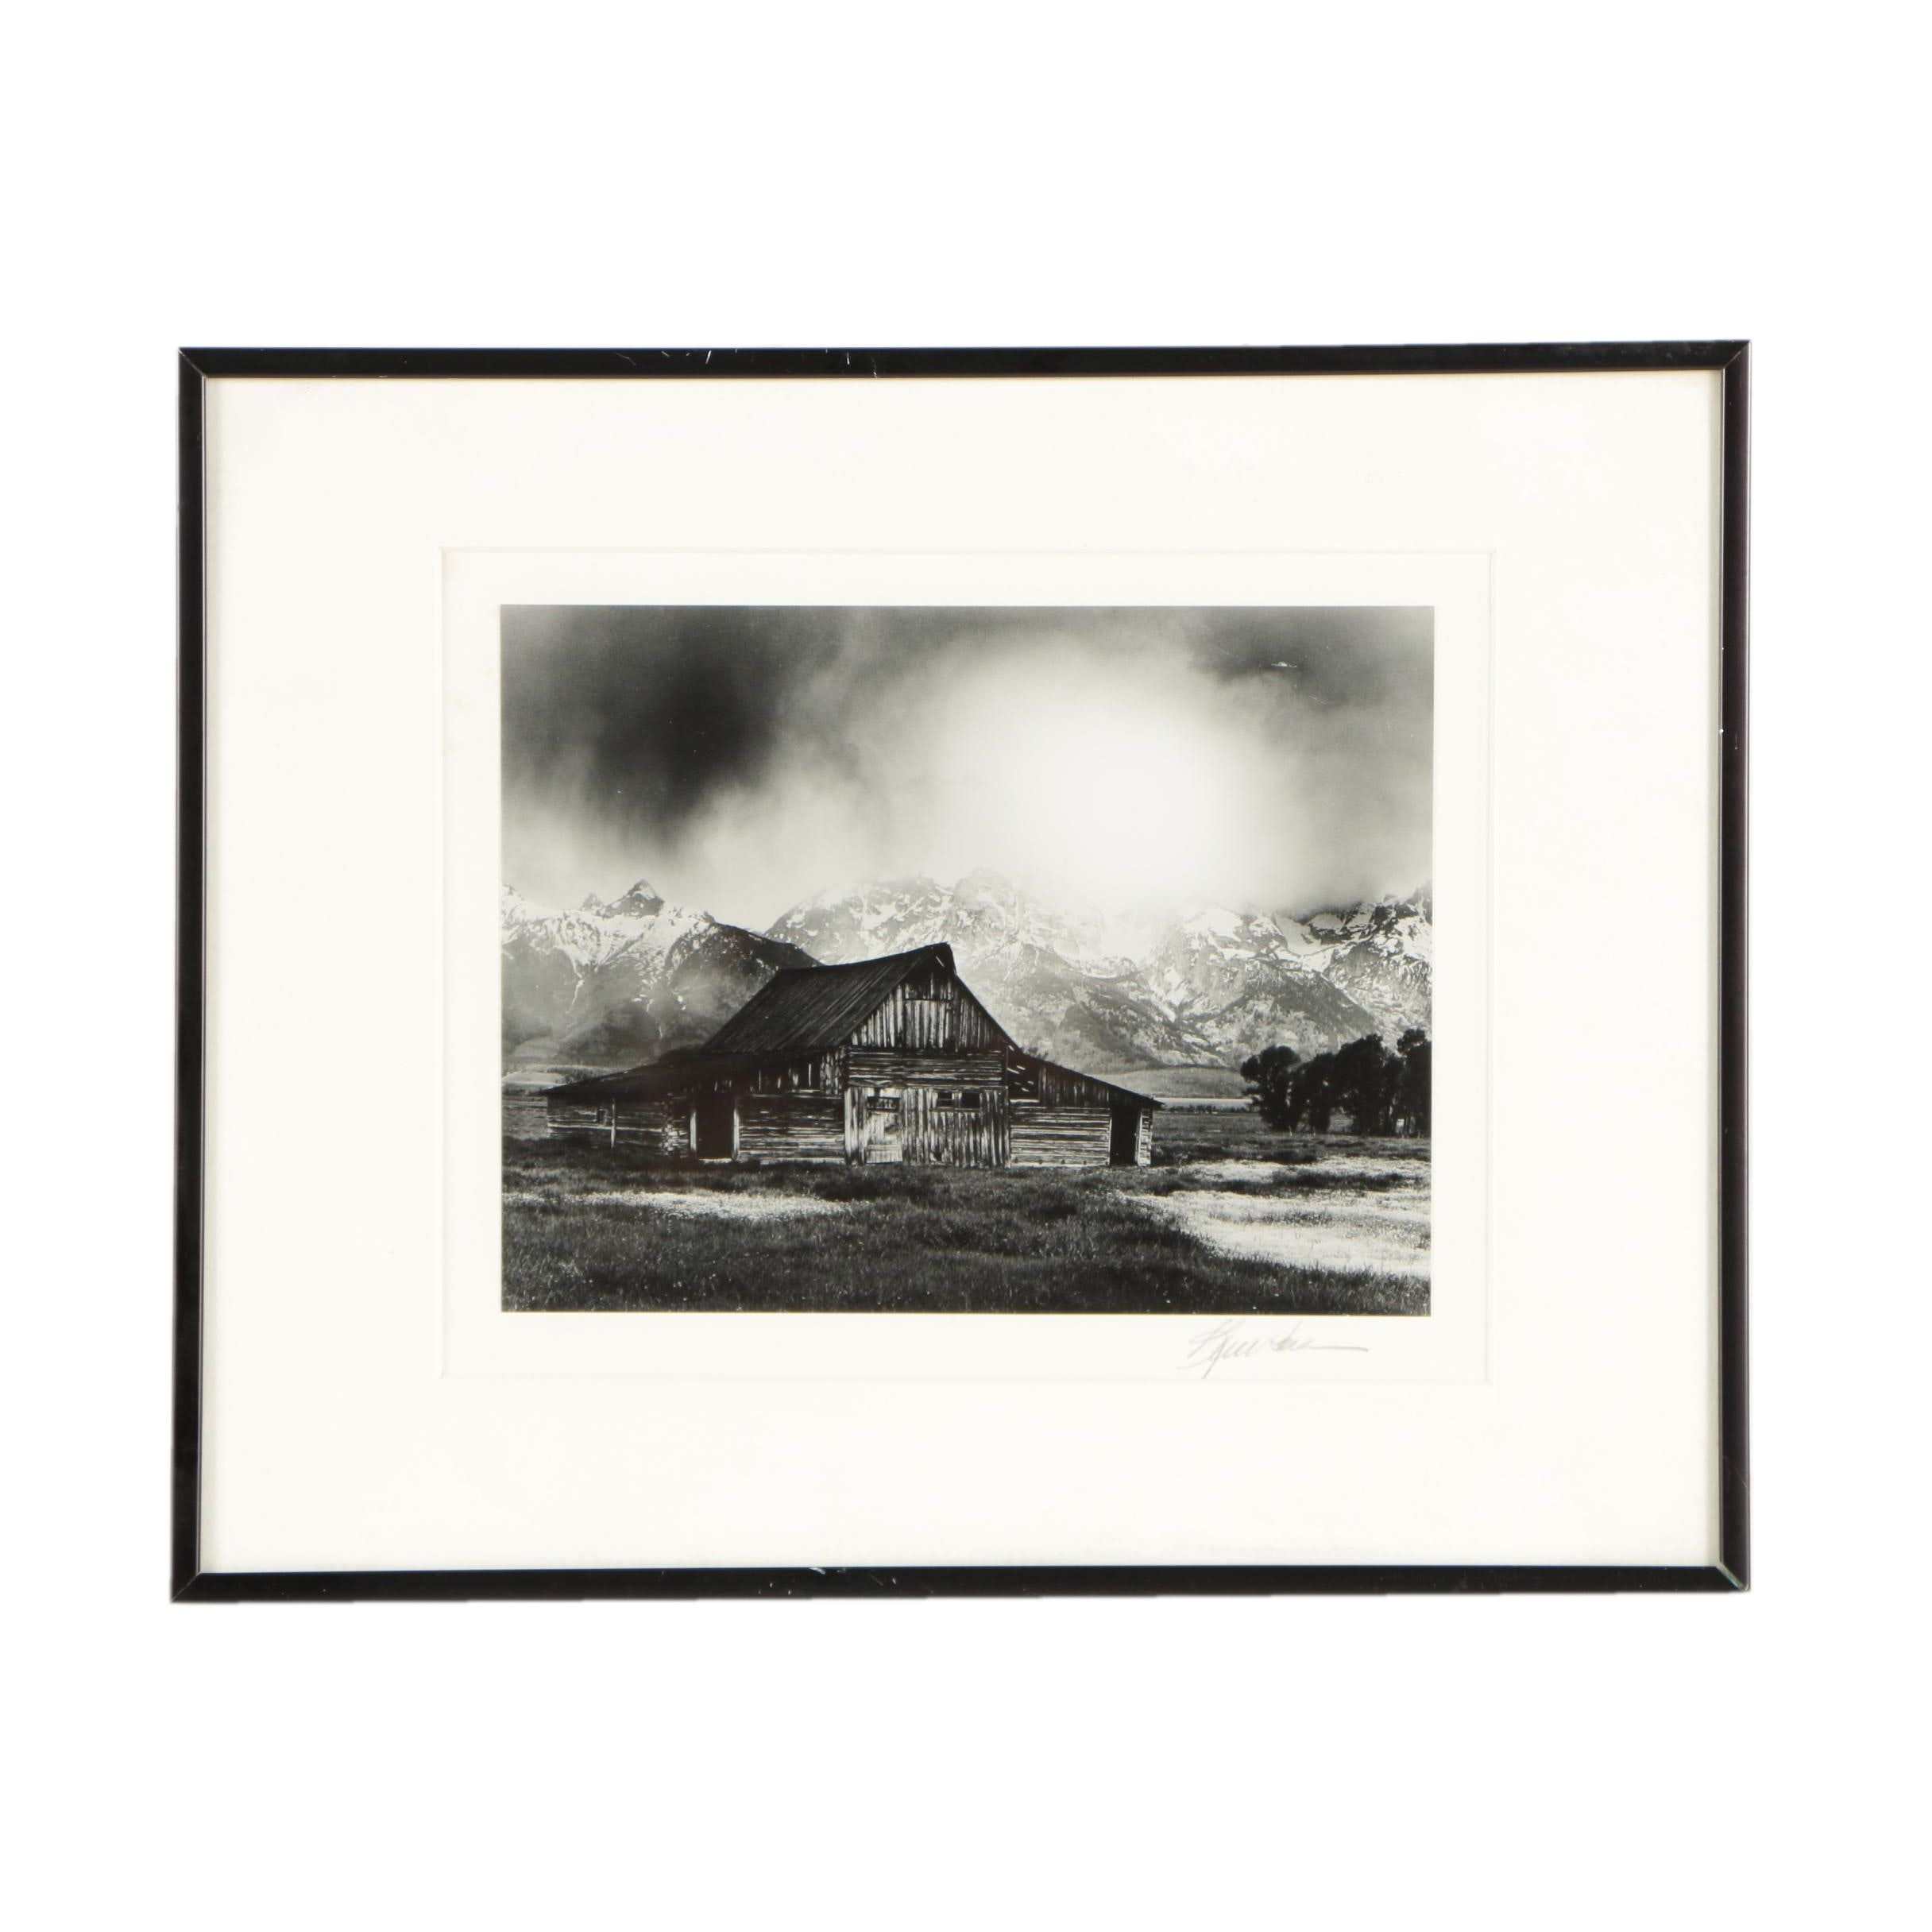 Black-and-White Photograph of Barn in Grand Teton National Park